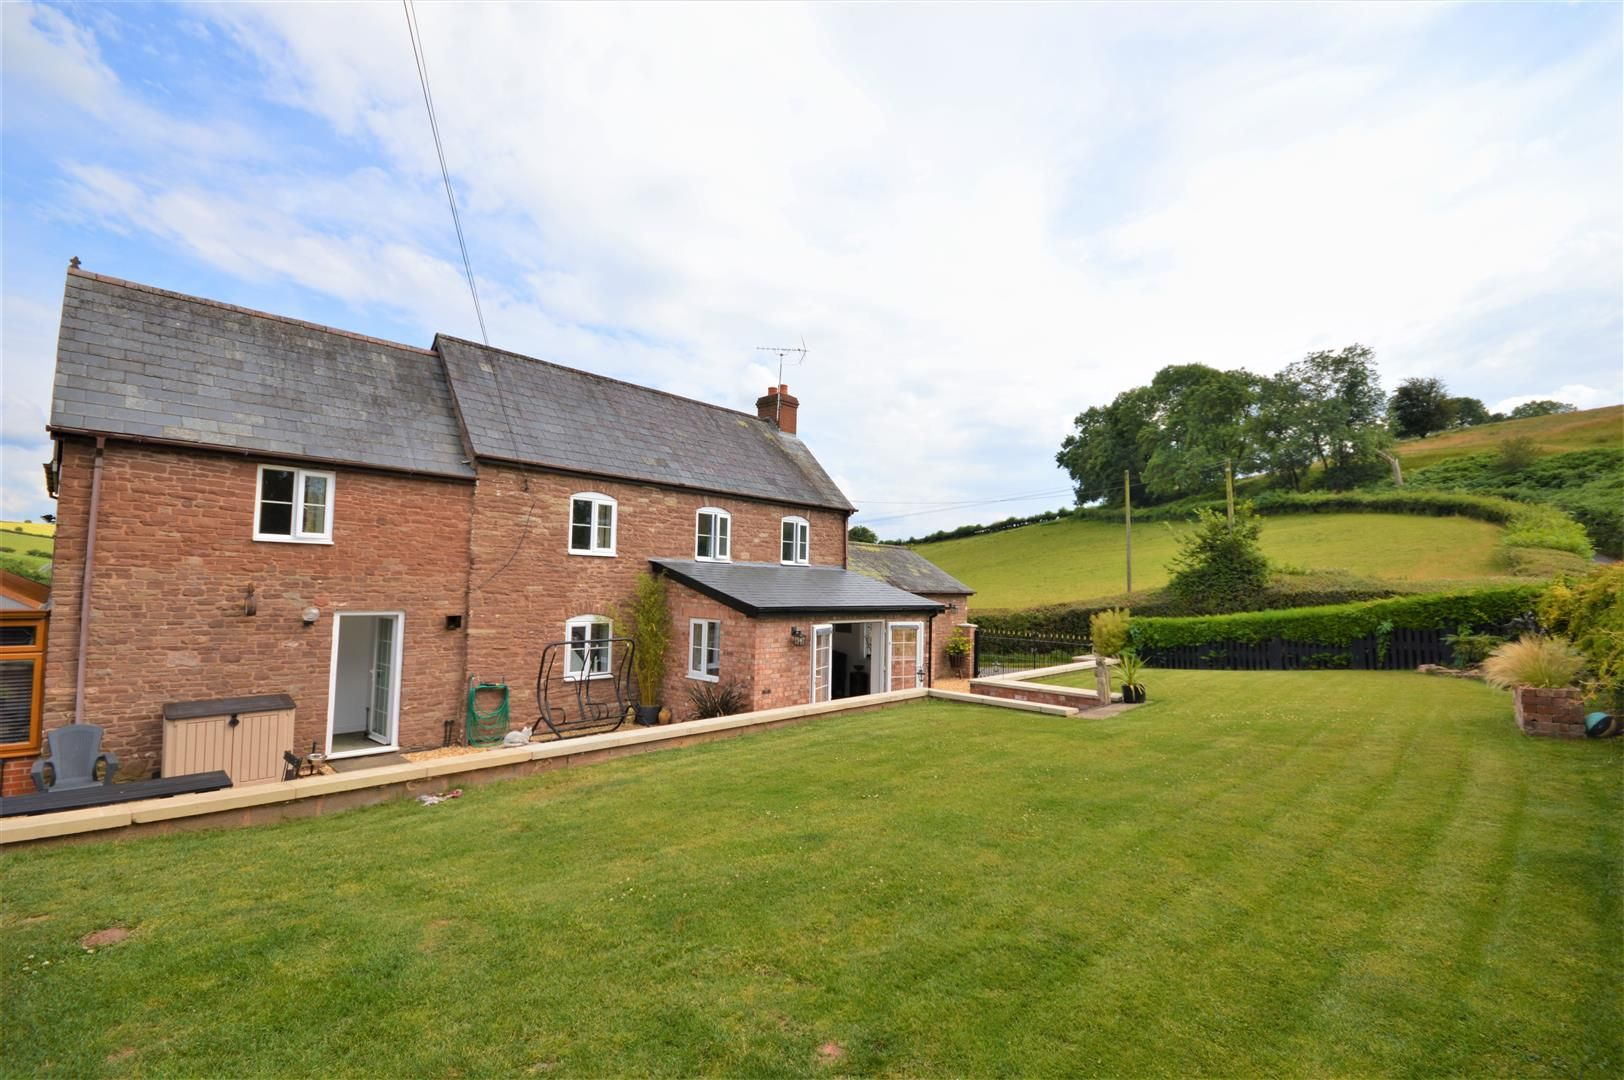 3 bed detached for sale in Orcop  - Property Image 4